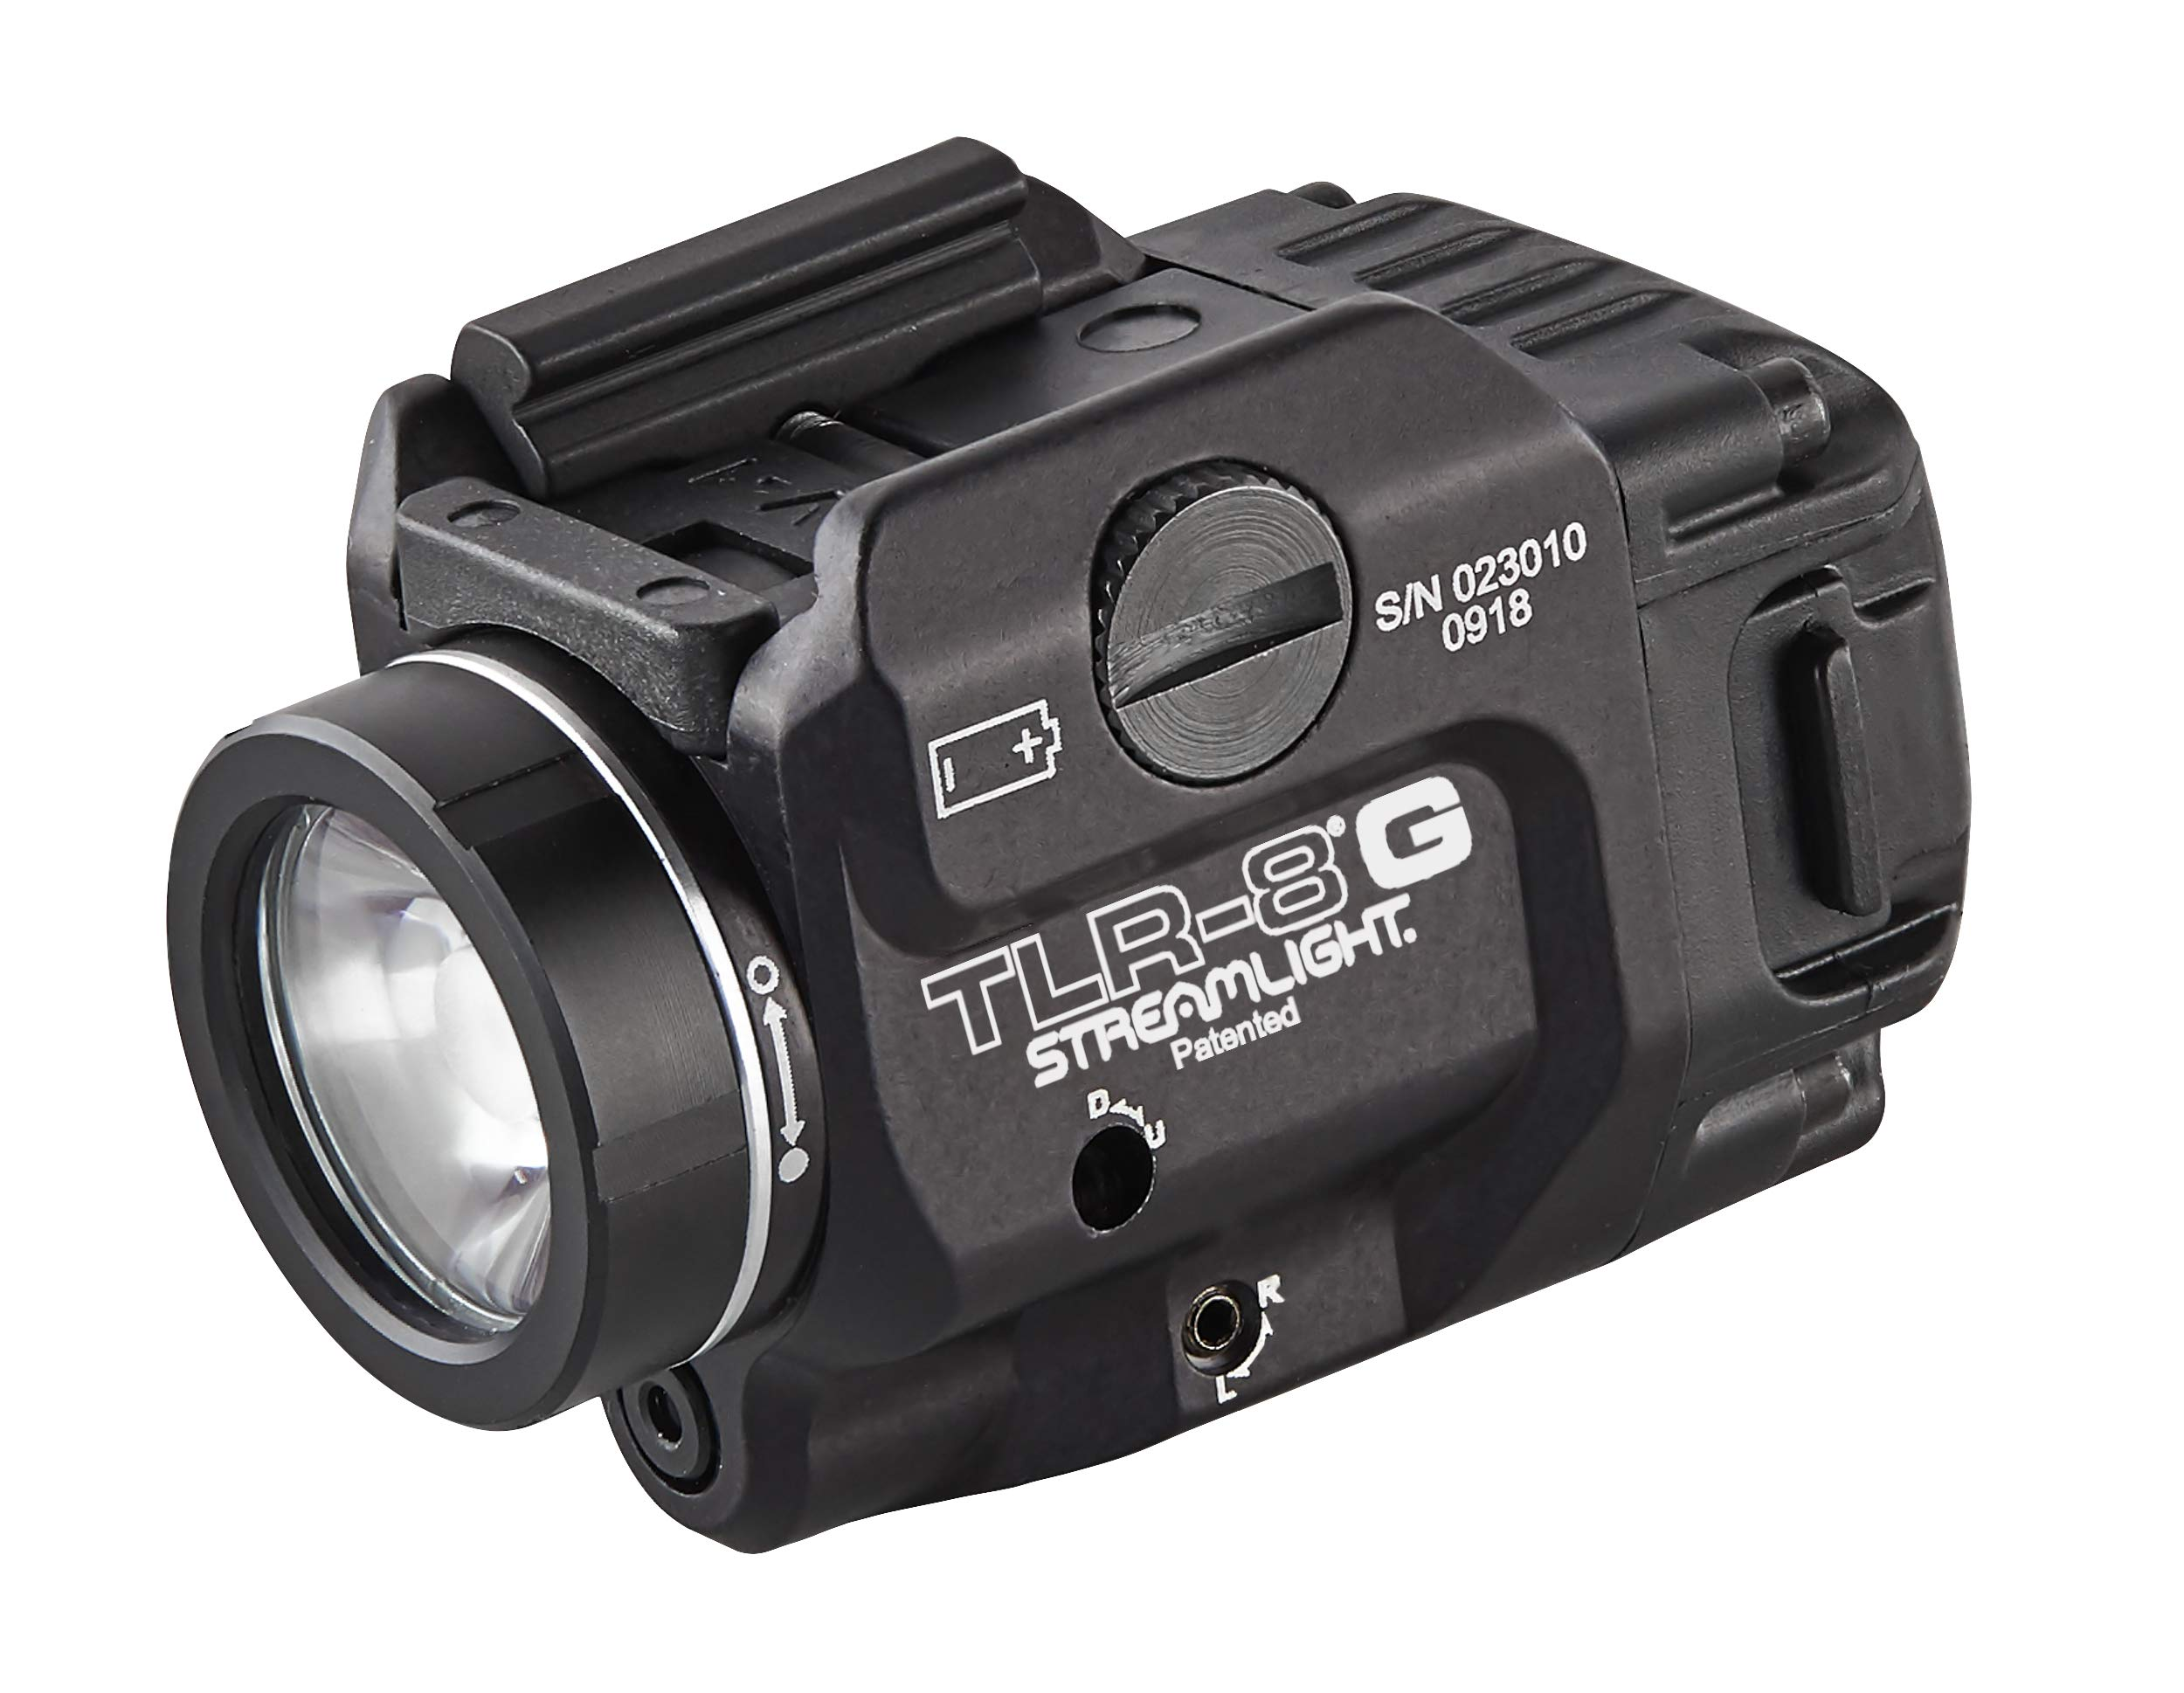 Streamlight 69430 TLR-8G with Rail Locating Keys & CR123A Lithium Battery - 500 Lumens by Streamlight